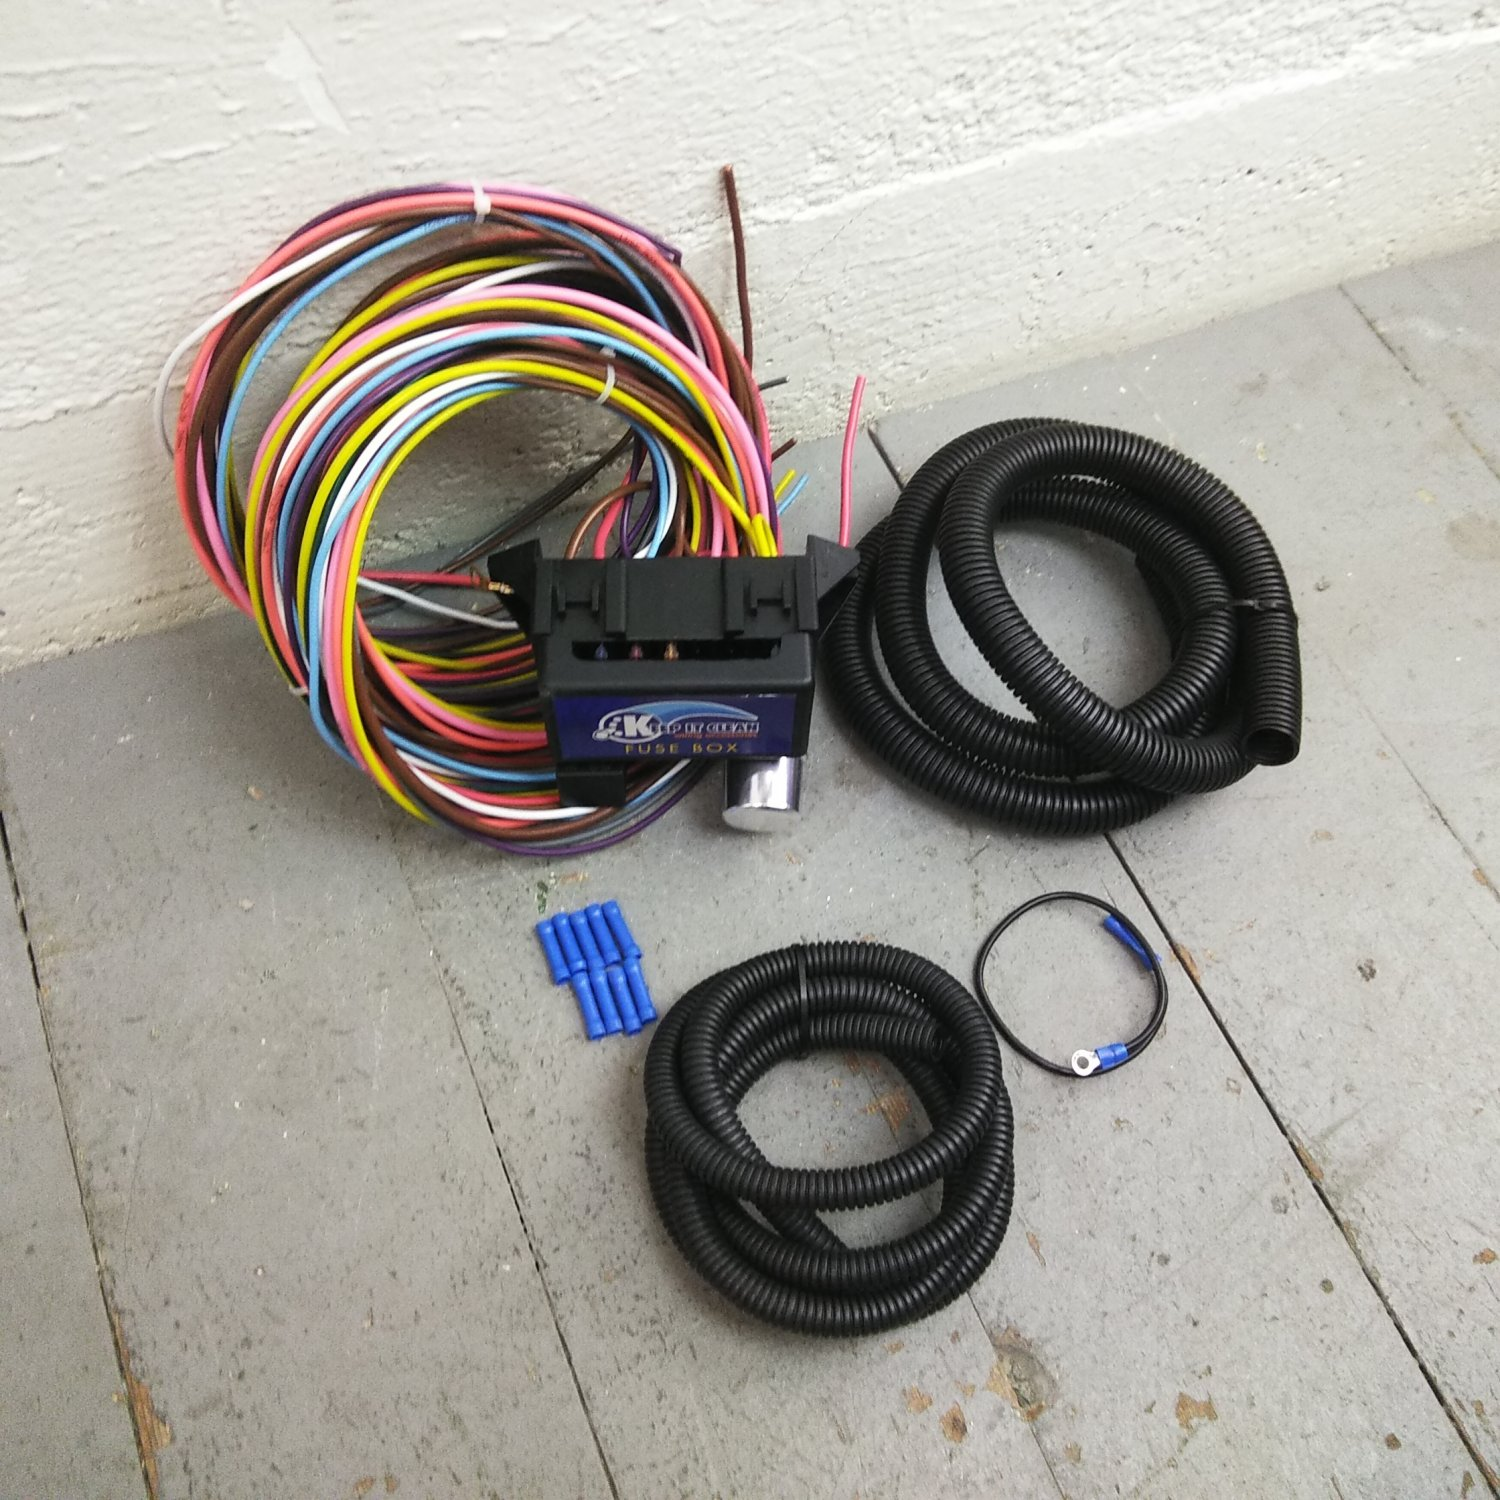 1960 1987 chevy truck 8 circuit wire harness fits. Black Bedroom Furniture Sets. Home Design Ideas